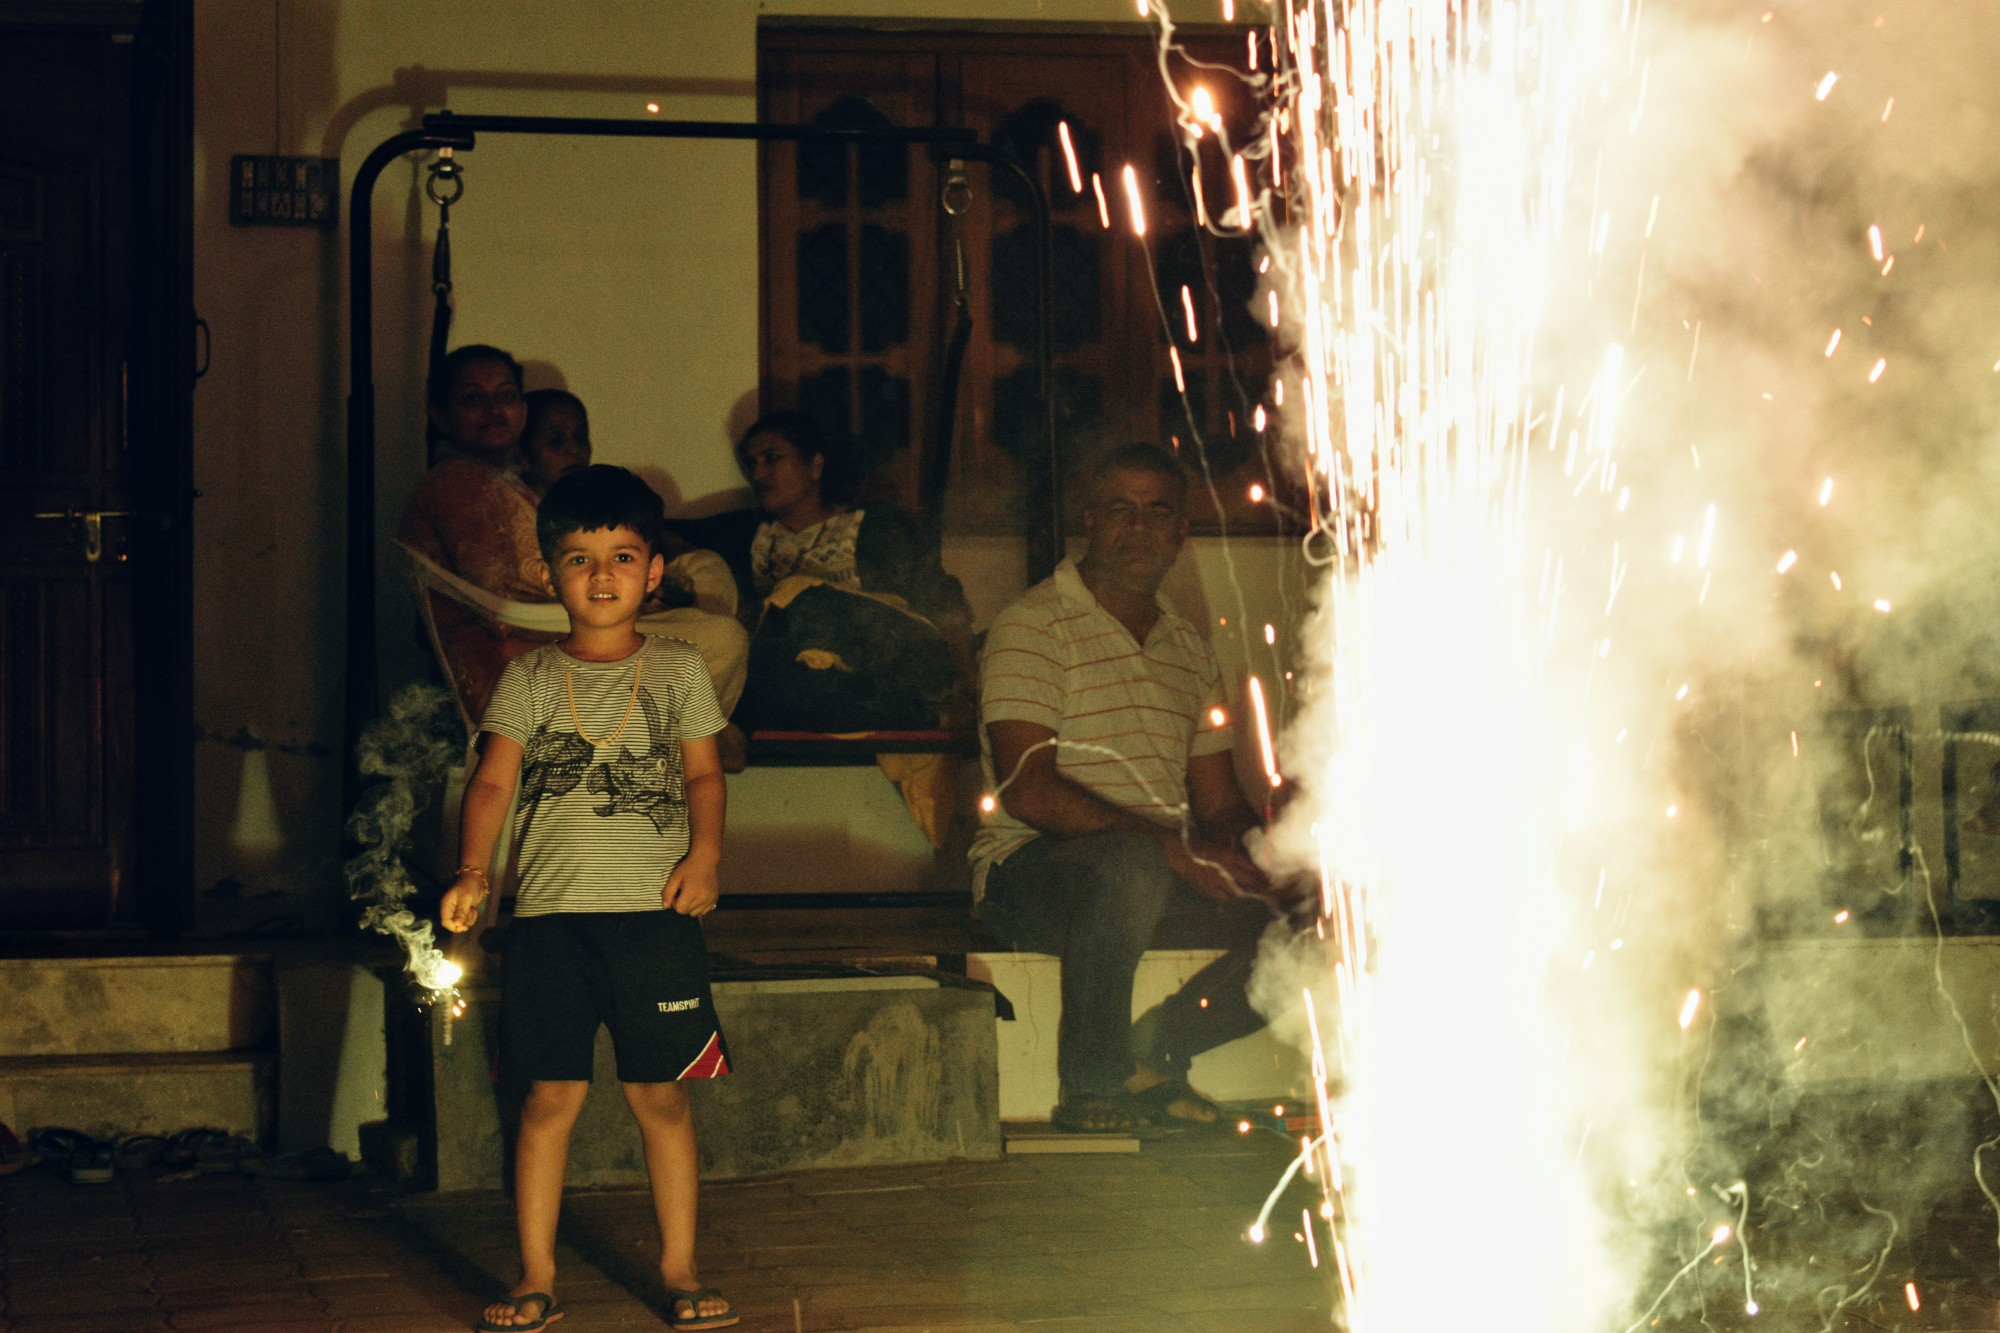 My cousin brother is enjoying diwali.